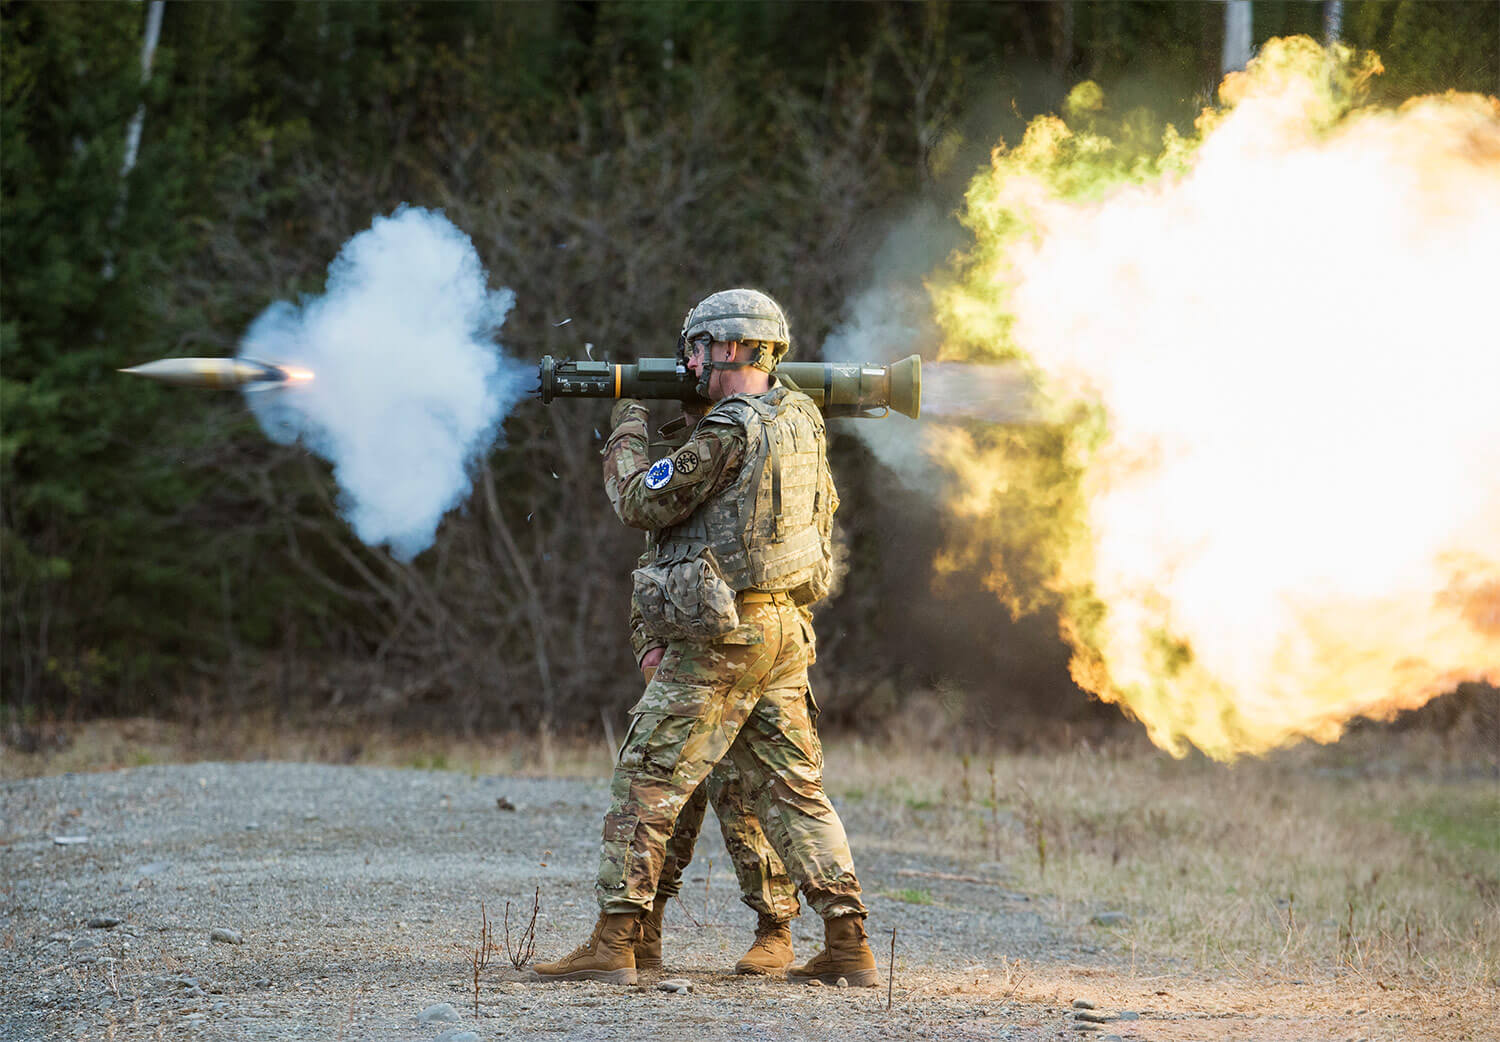 SGT Jay Utter, assigned to the Montana Army National Guard, fires an M136E1 AT4-CS confined light anti-armor weapon while competing in the National Guard Best Warrior Region VI 2018 competition at Joint Base Elmendorf-Richardson, Alaska, this past May. National Guard Best Warrior Region VI 2018 is a four-day competition that tests Soldiers' mental and physical toughness through a series of events designed to push technical and tactical proficiency. The region's top non-commissioned officer and junior enlisted Soldier are selected through the competition. Alaska National Guard photo by Alejandro Peña